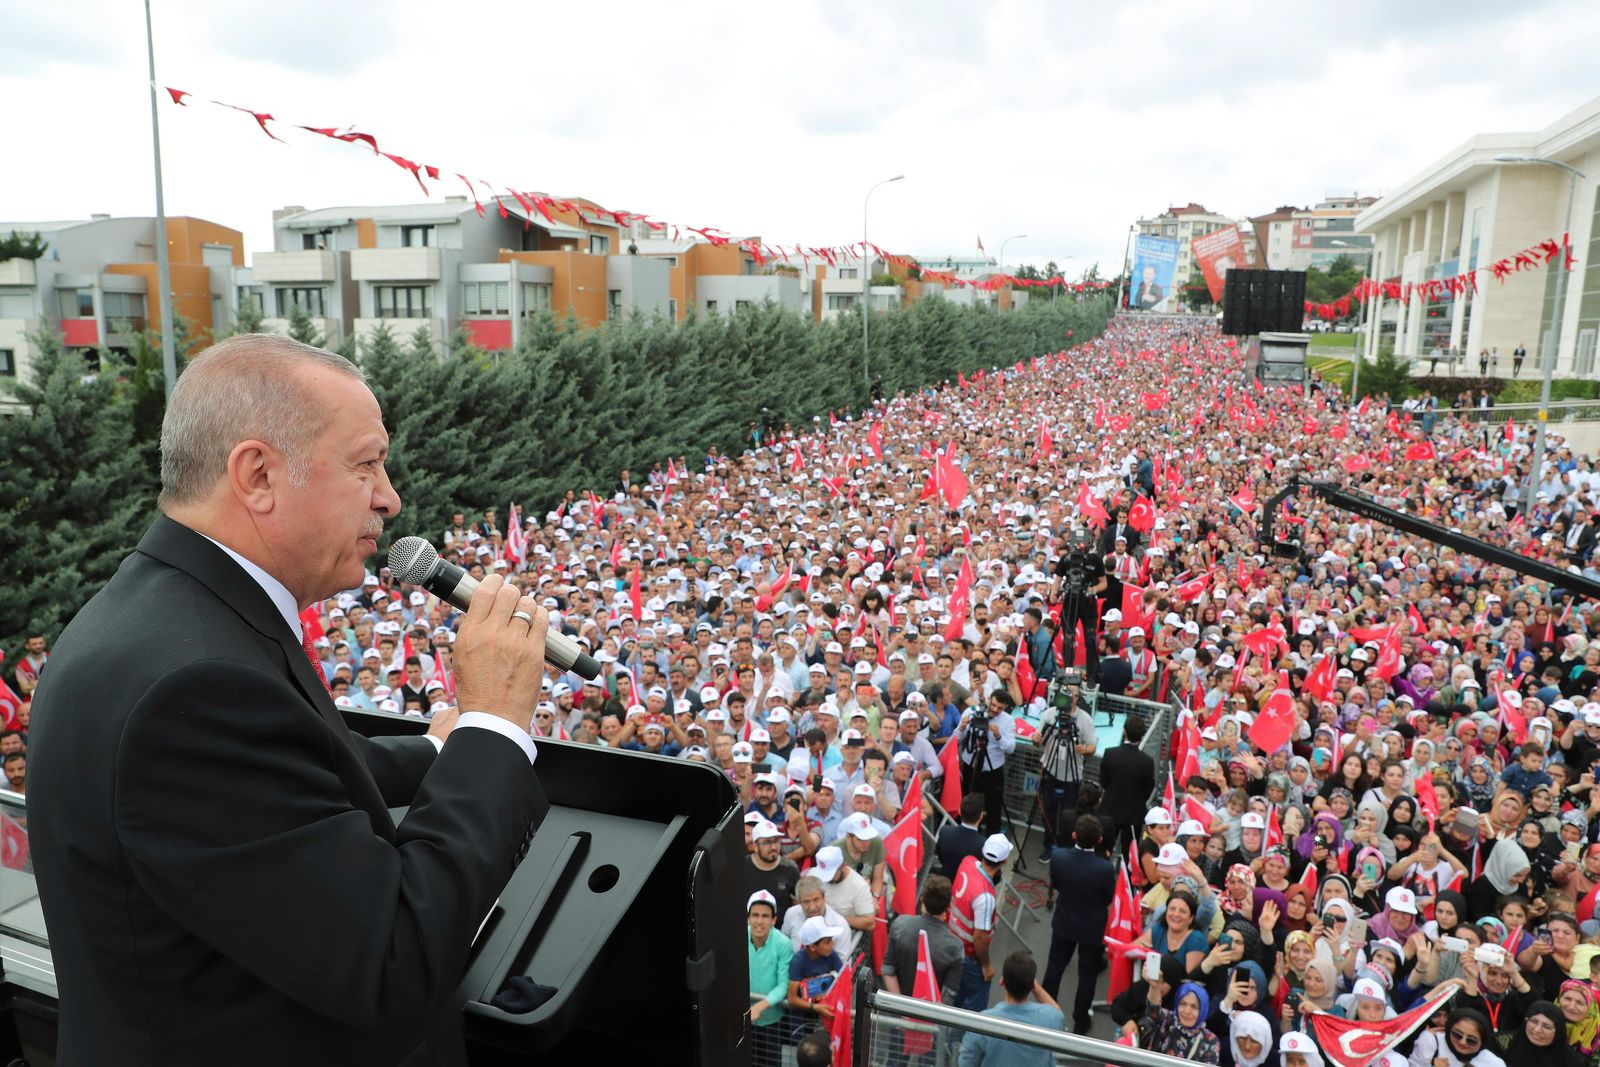 Turkey's President Recep Tayyip Erdogan, talks to supporters during a campaign rally in Istanbul for the June 23 re-run of Istanbul elections, Wednesday, June 19, 2019. (Presidential Press Service via AP, Pool)